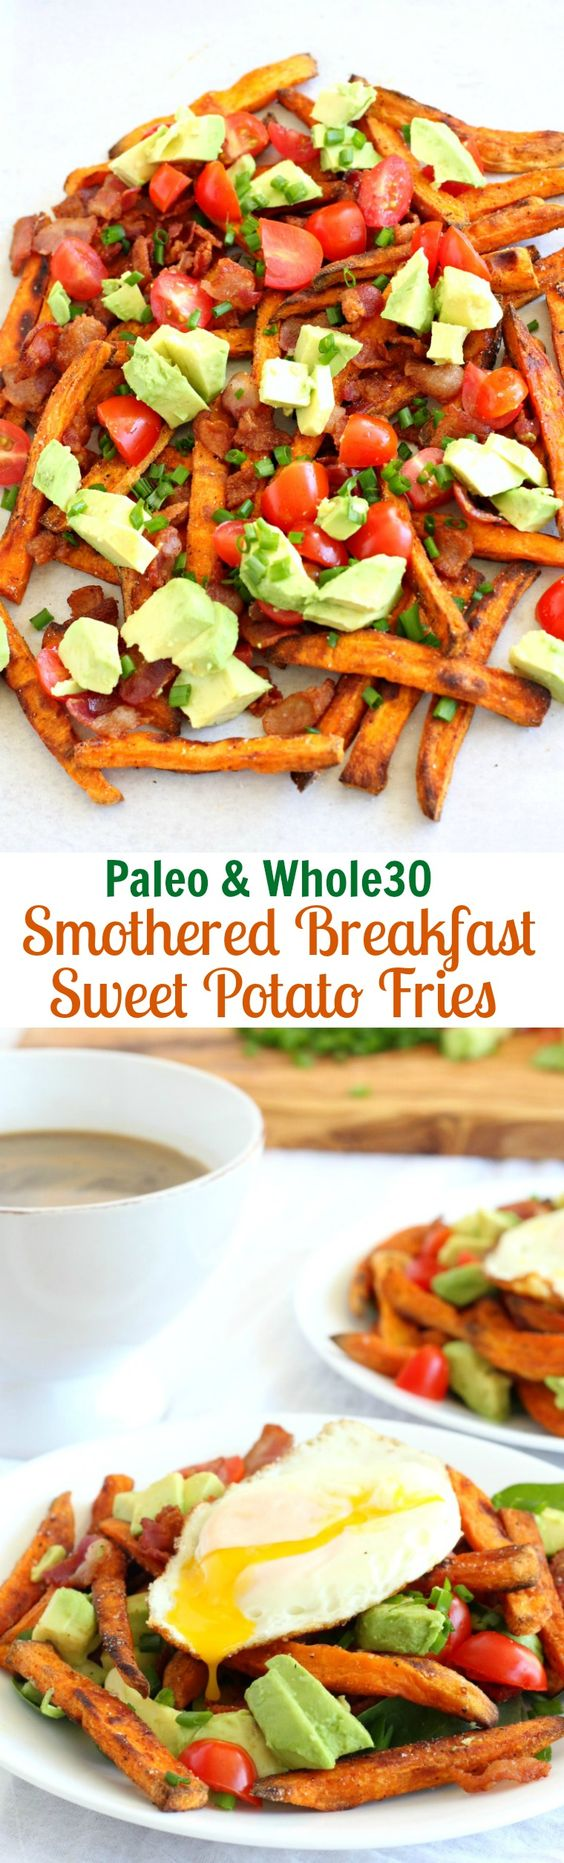 Smothered Breakfast Sweet Potato Fries - Paleo and Whole30 friendly! Crispy baked sweet potato fries are topped with bacon, tomatoes, avocado, chives, and fried eggs!